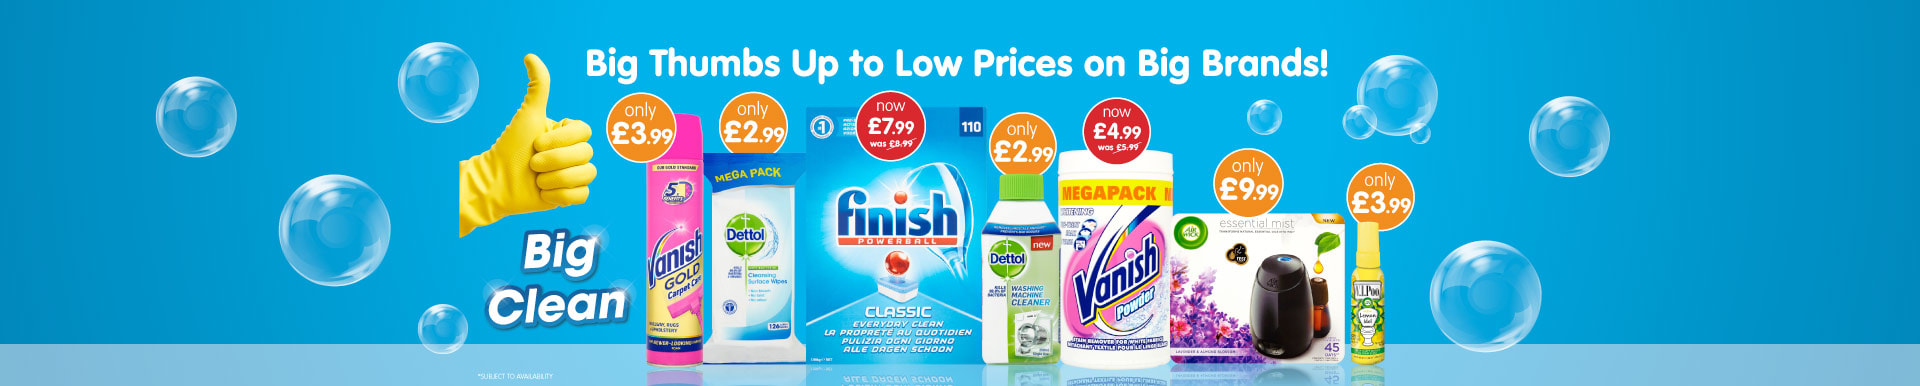 Save on Fairy, Dettol and Vanish at B&M.